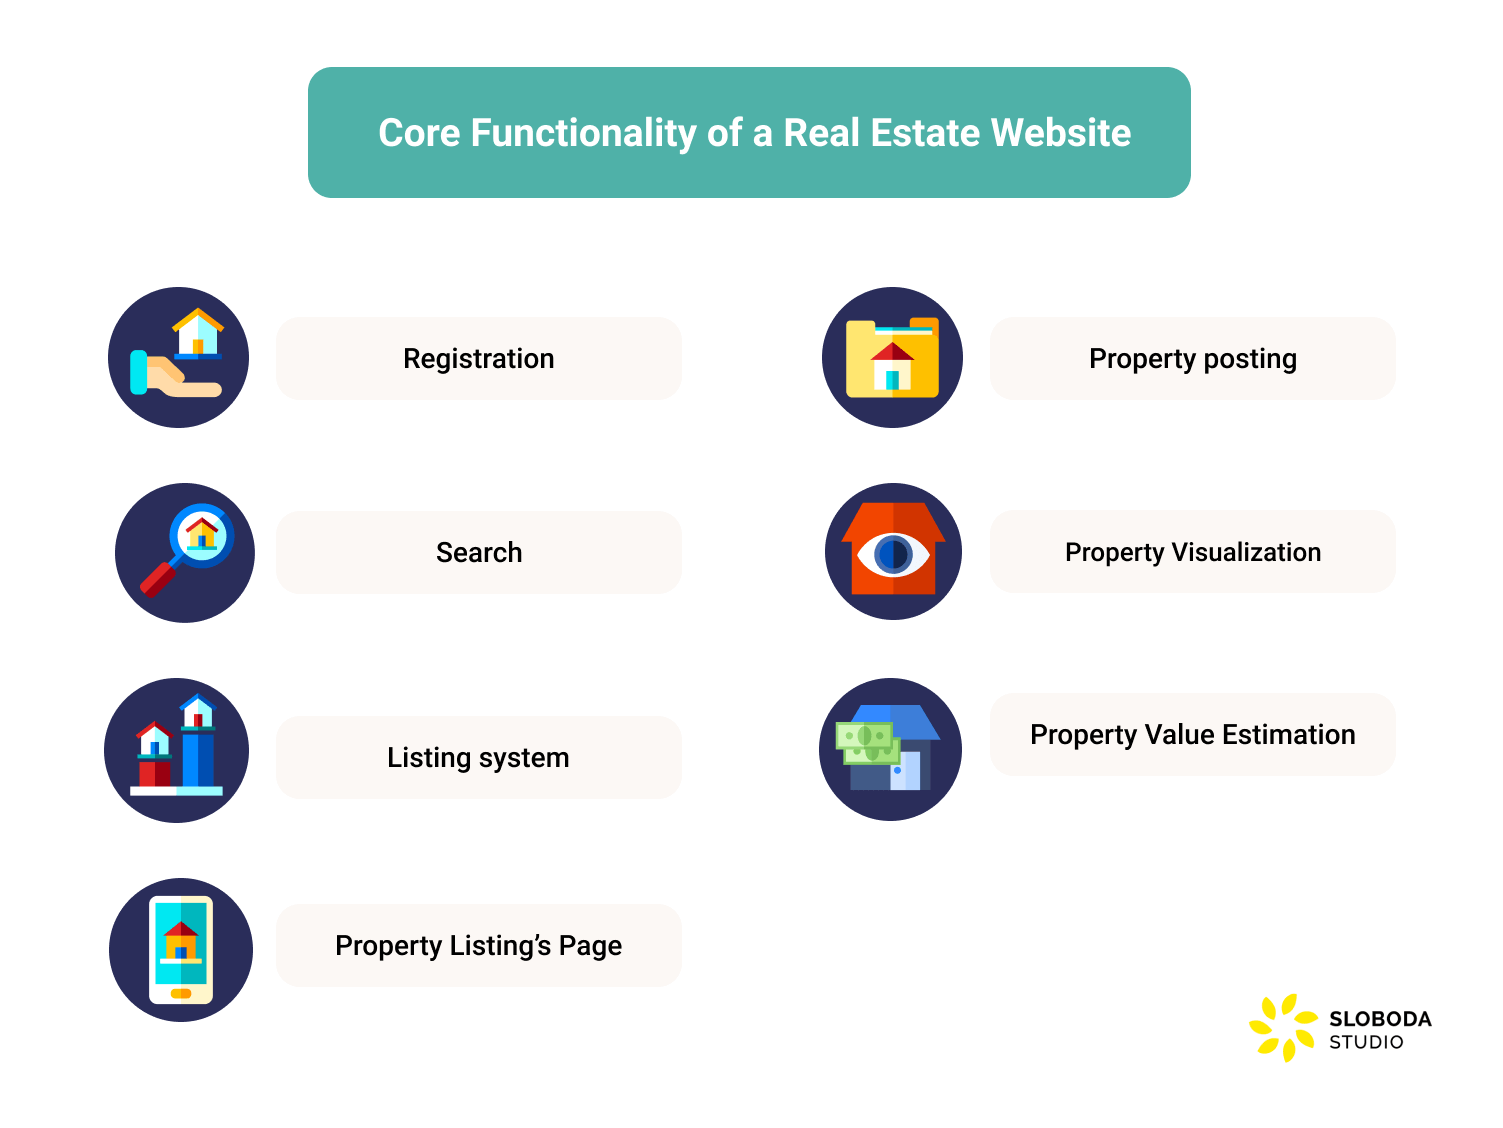 7 Must-have Features of a Real Estate Website